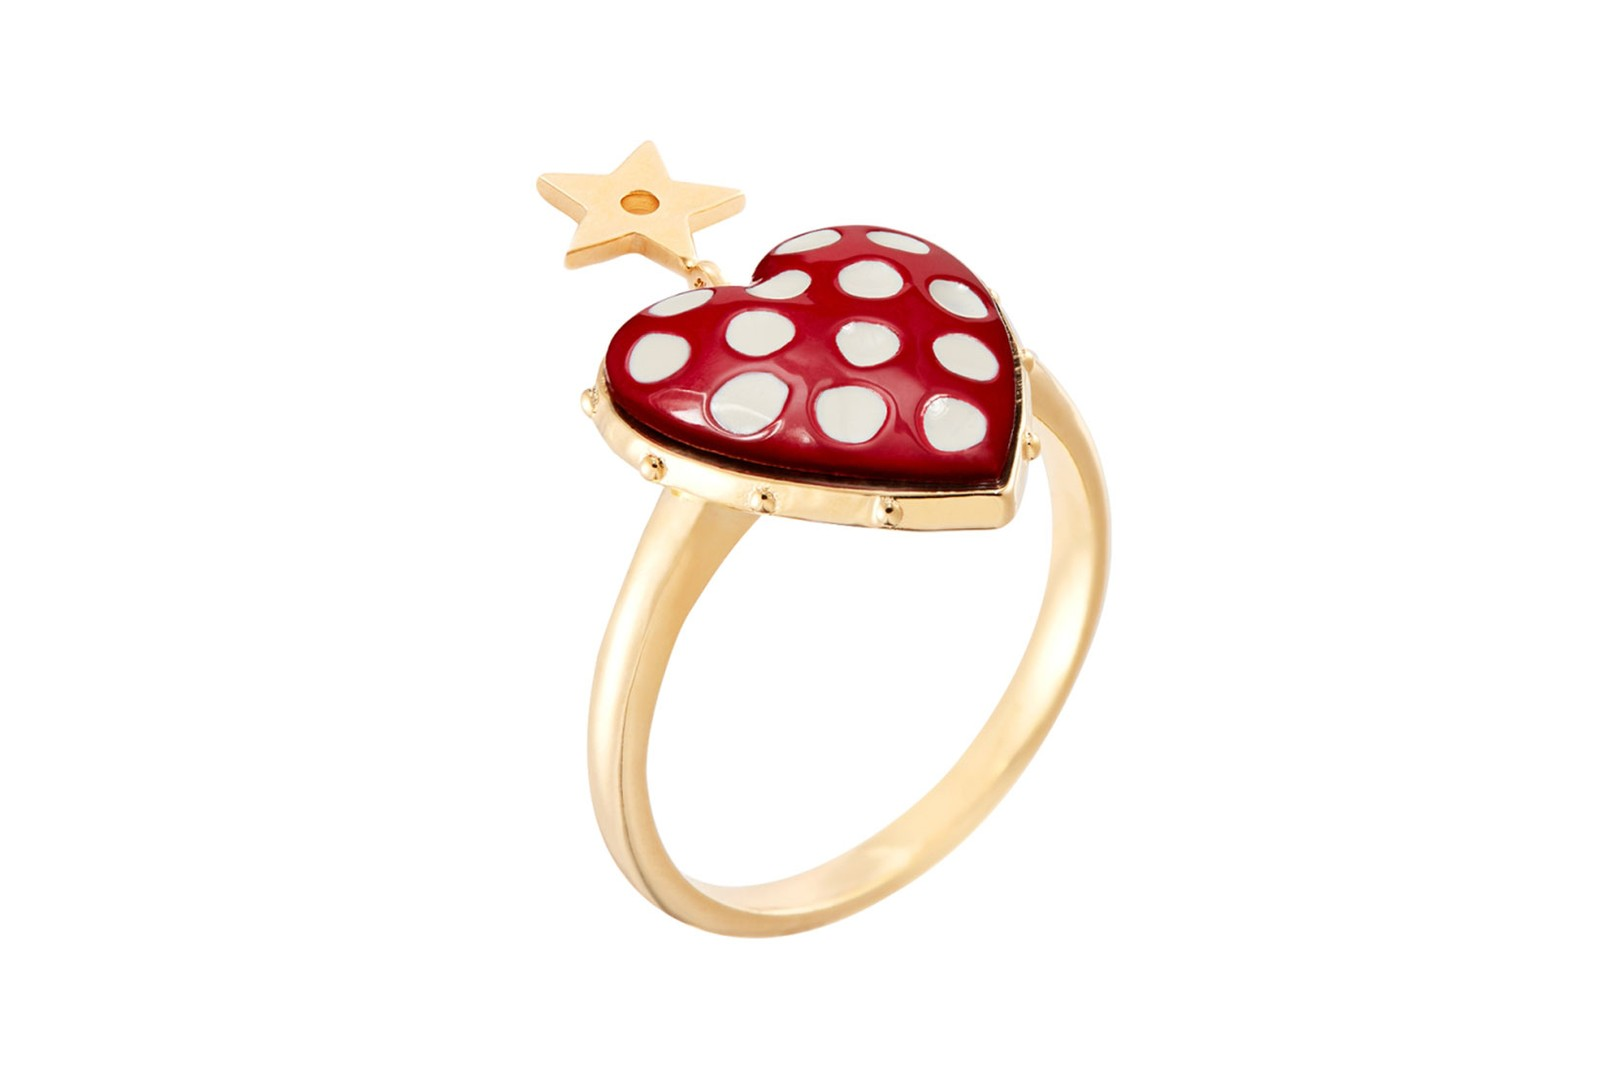 dior dioramour red polka dots bags book tote d-lite 30 montaigne box accessories jewelry capsule collection